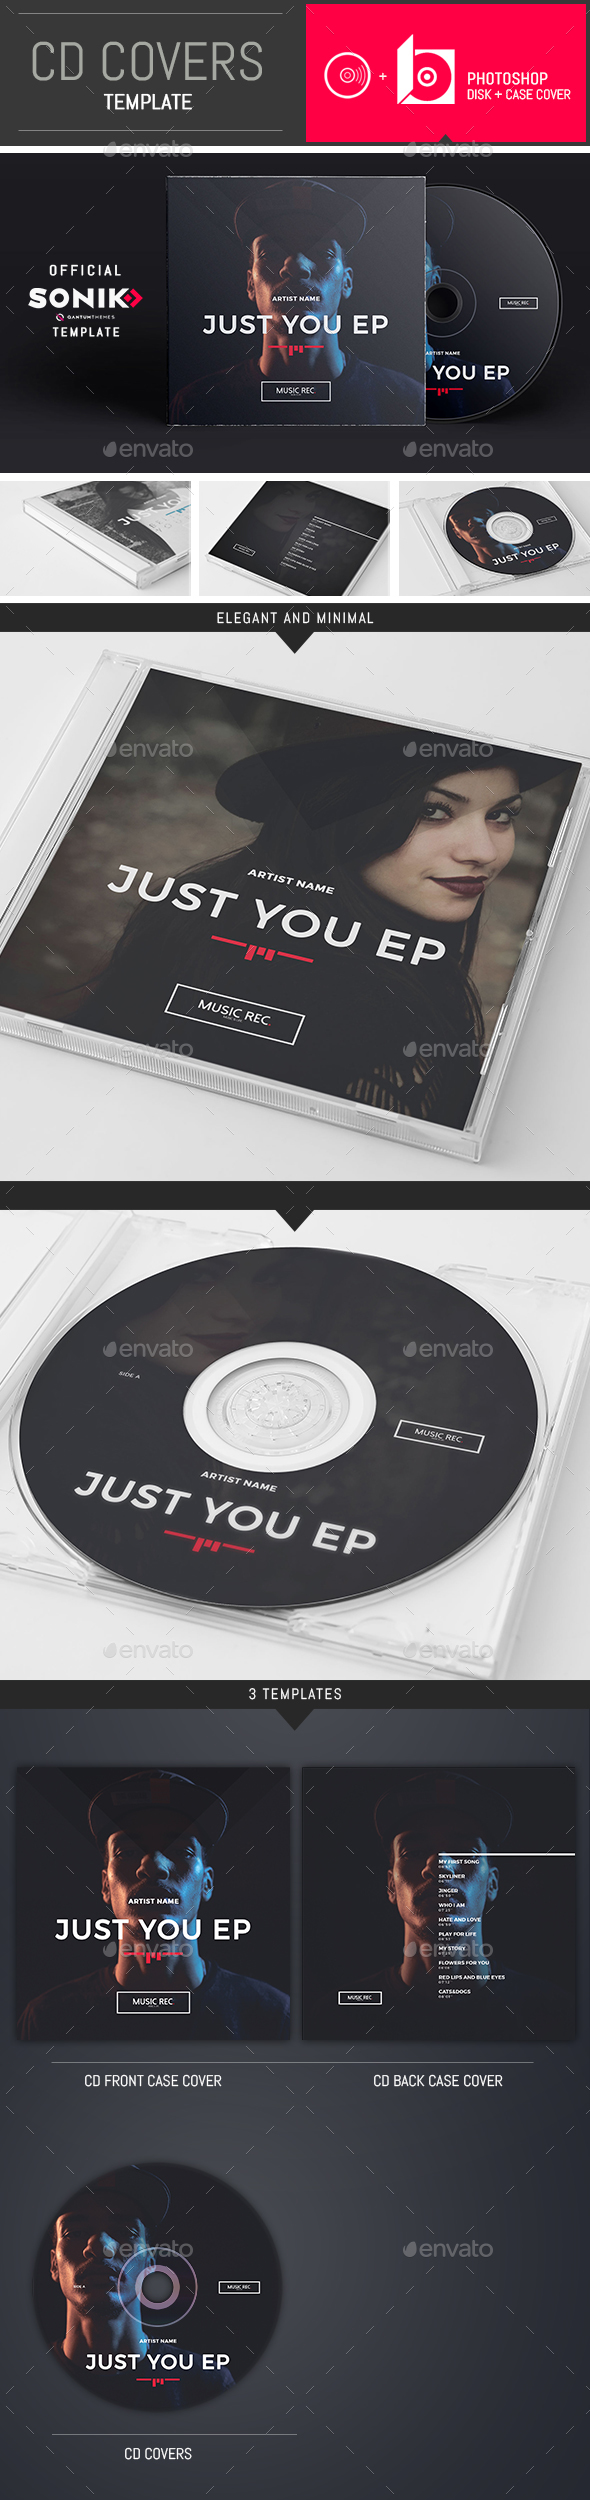 SONIK: DJ / Musician / Band CD Cover Template - CD & DVD Artwork Print Templates